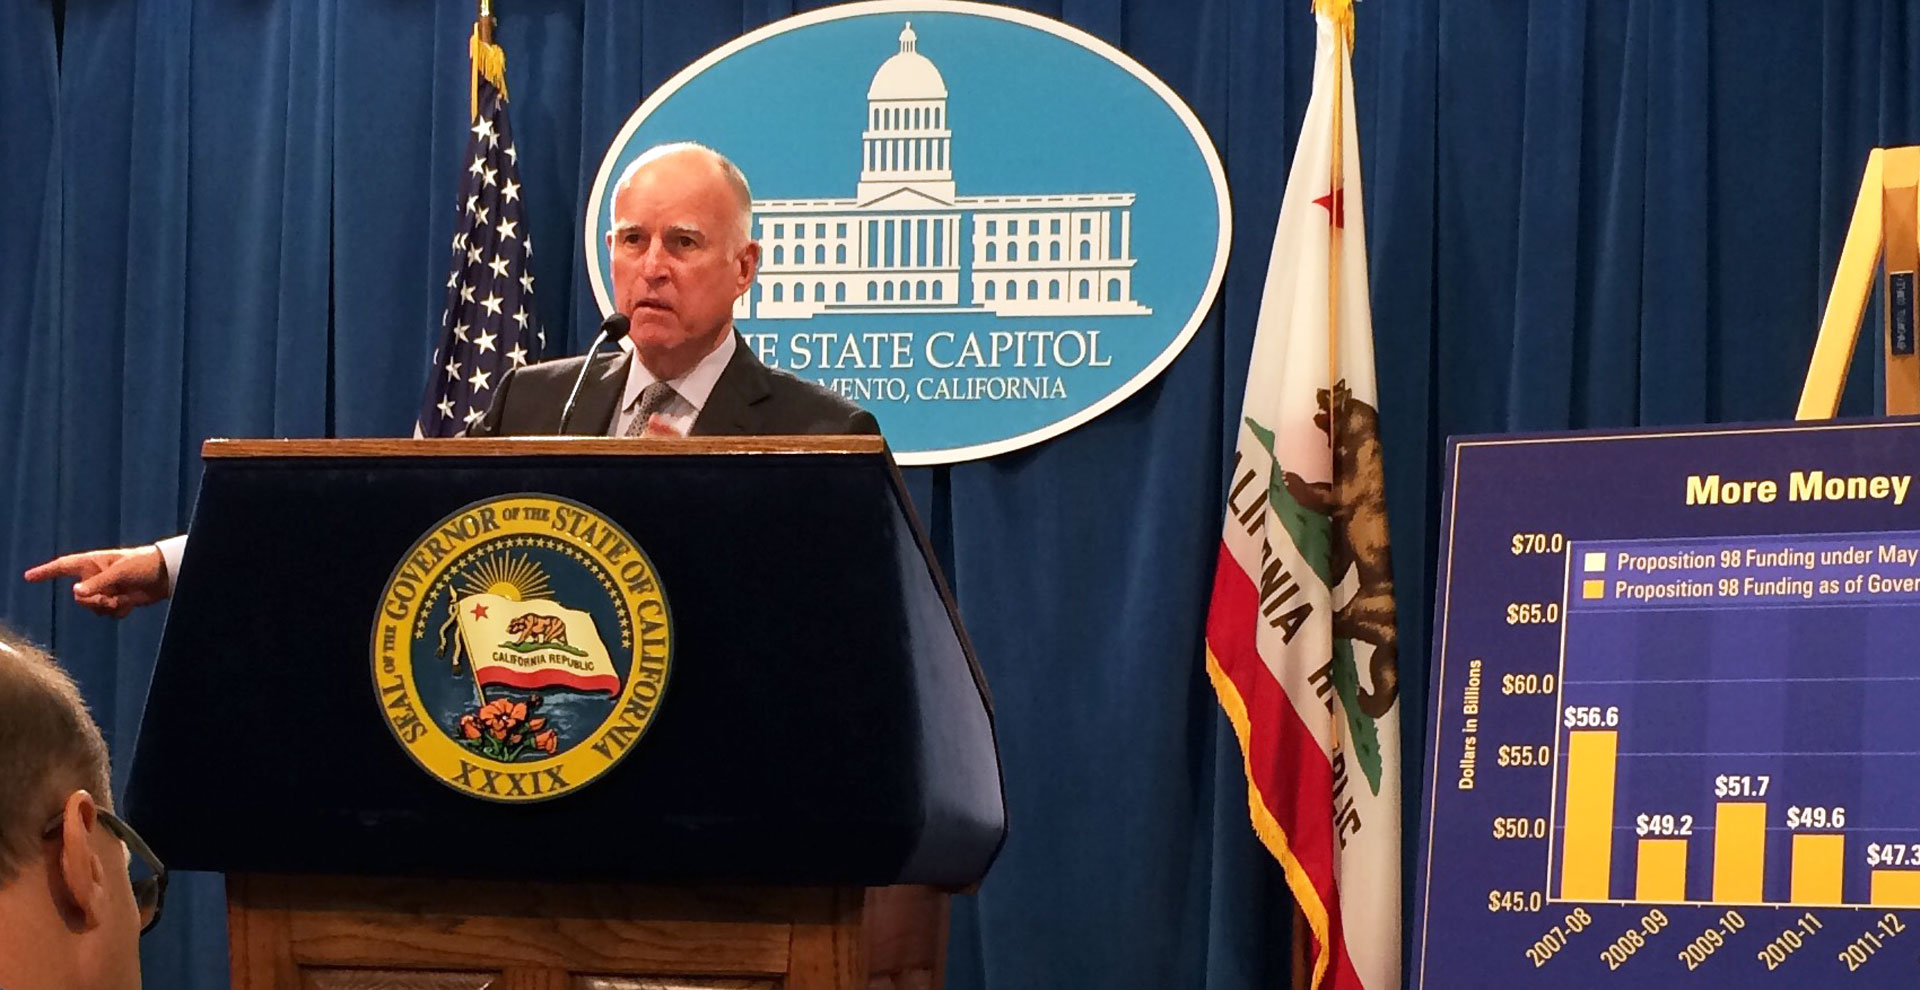 Gov. Jerry Brown presents his revised state budget on May 14, 2015 at the state Capitol.